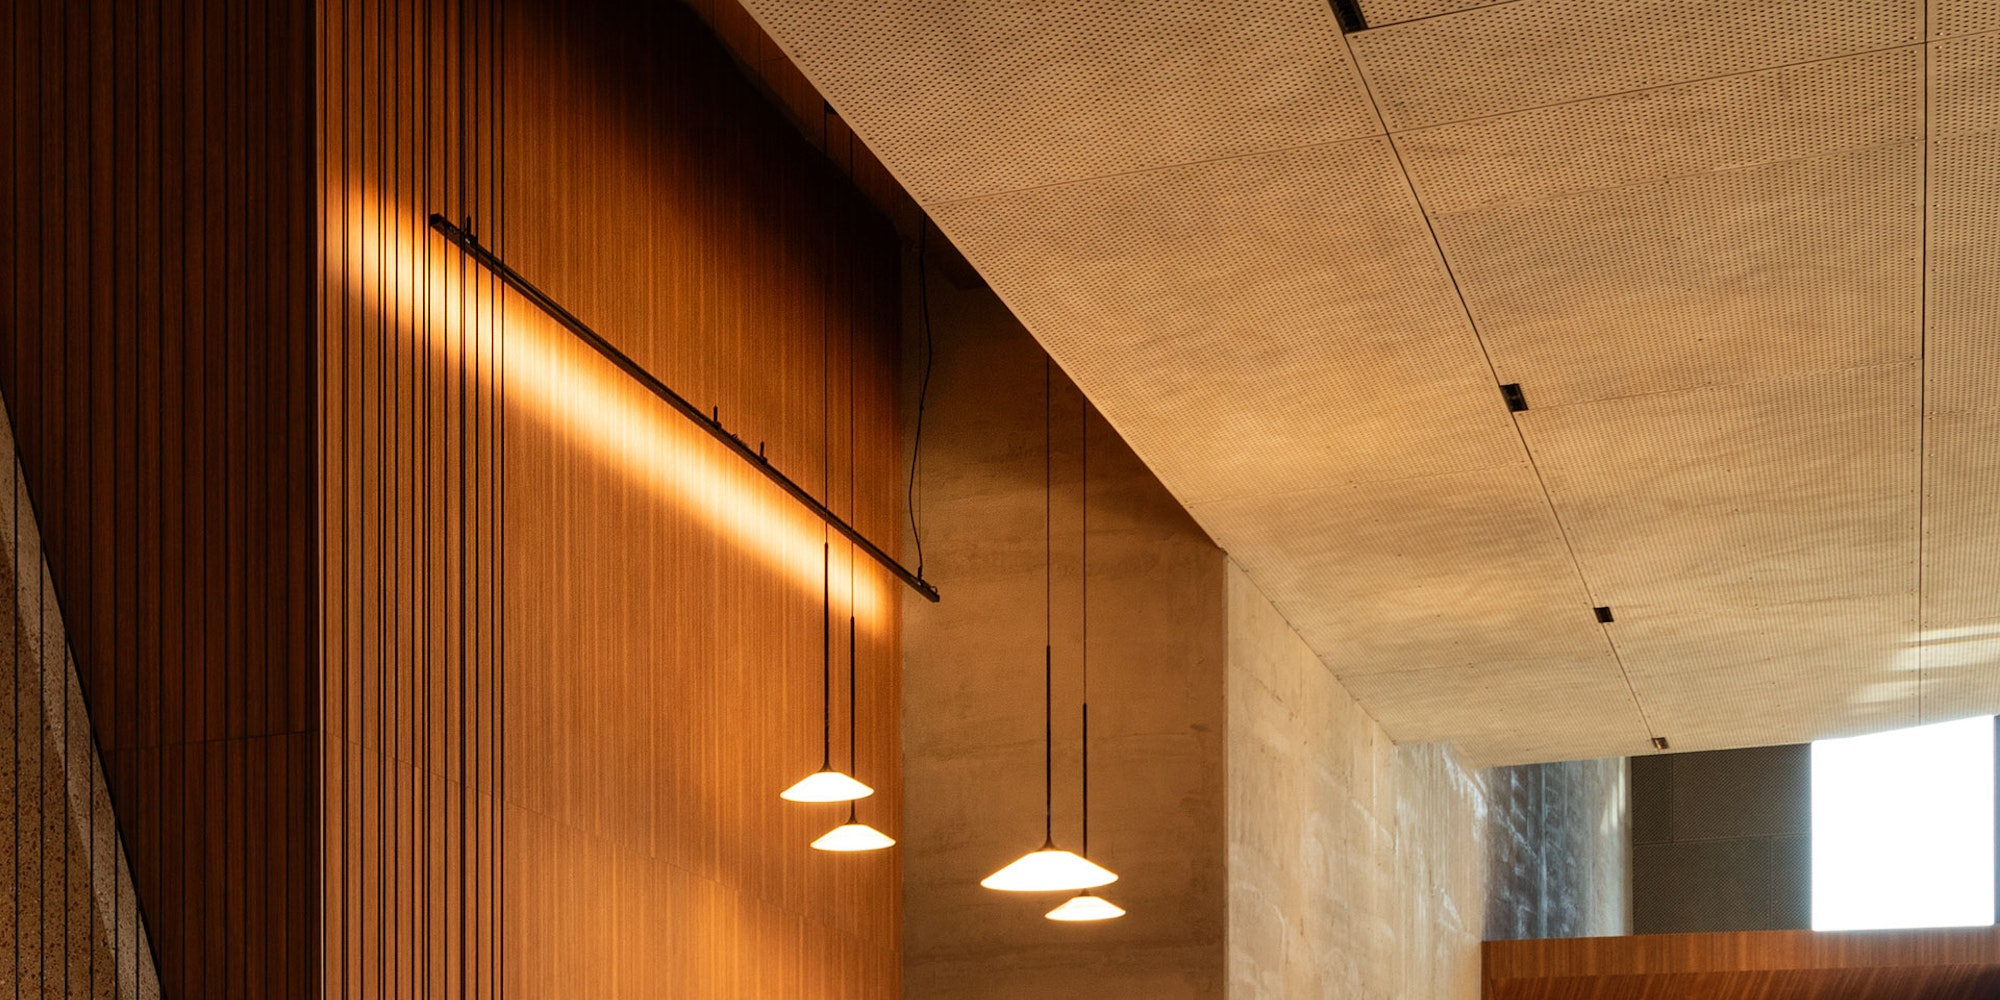 Forma compact, low-voltage LED Luminaire in application, installed in the Melbourne Conservatorium of Music.